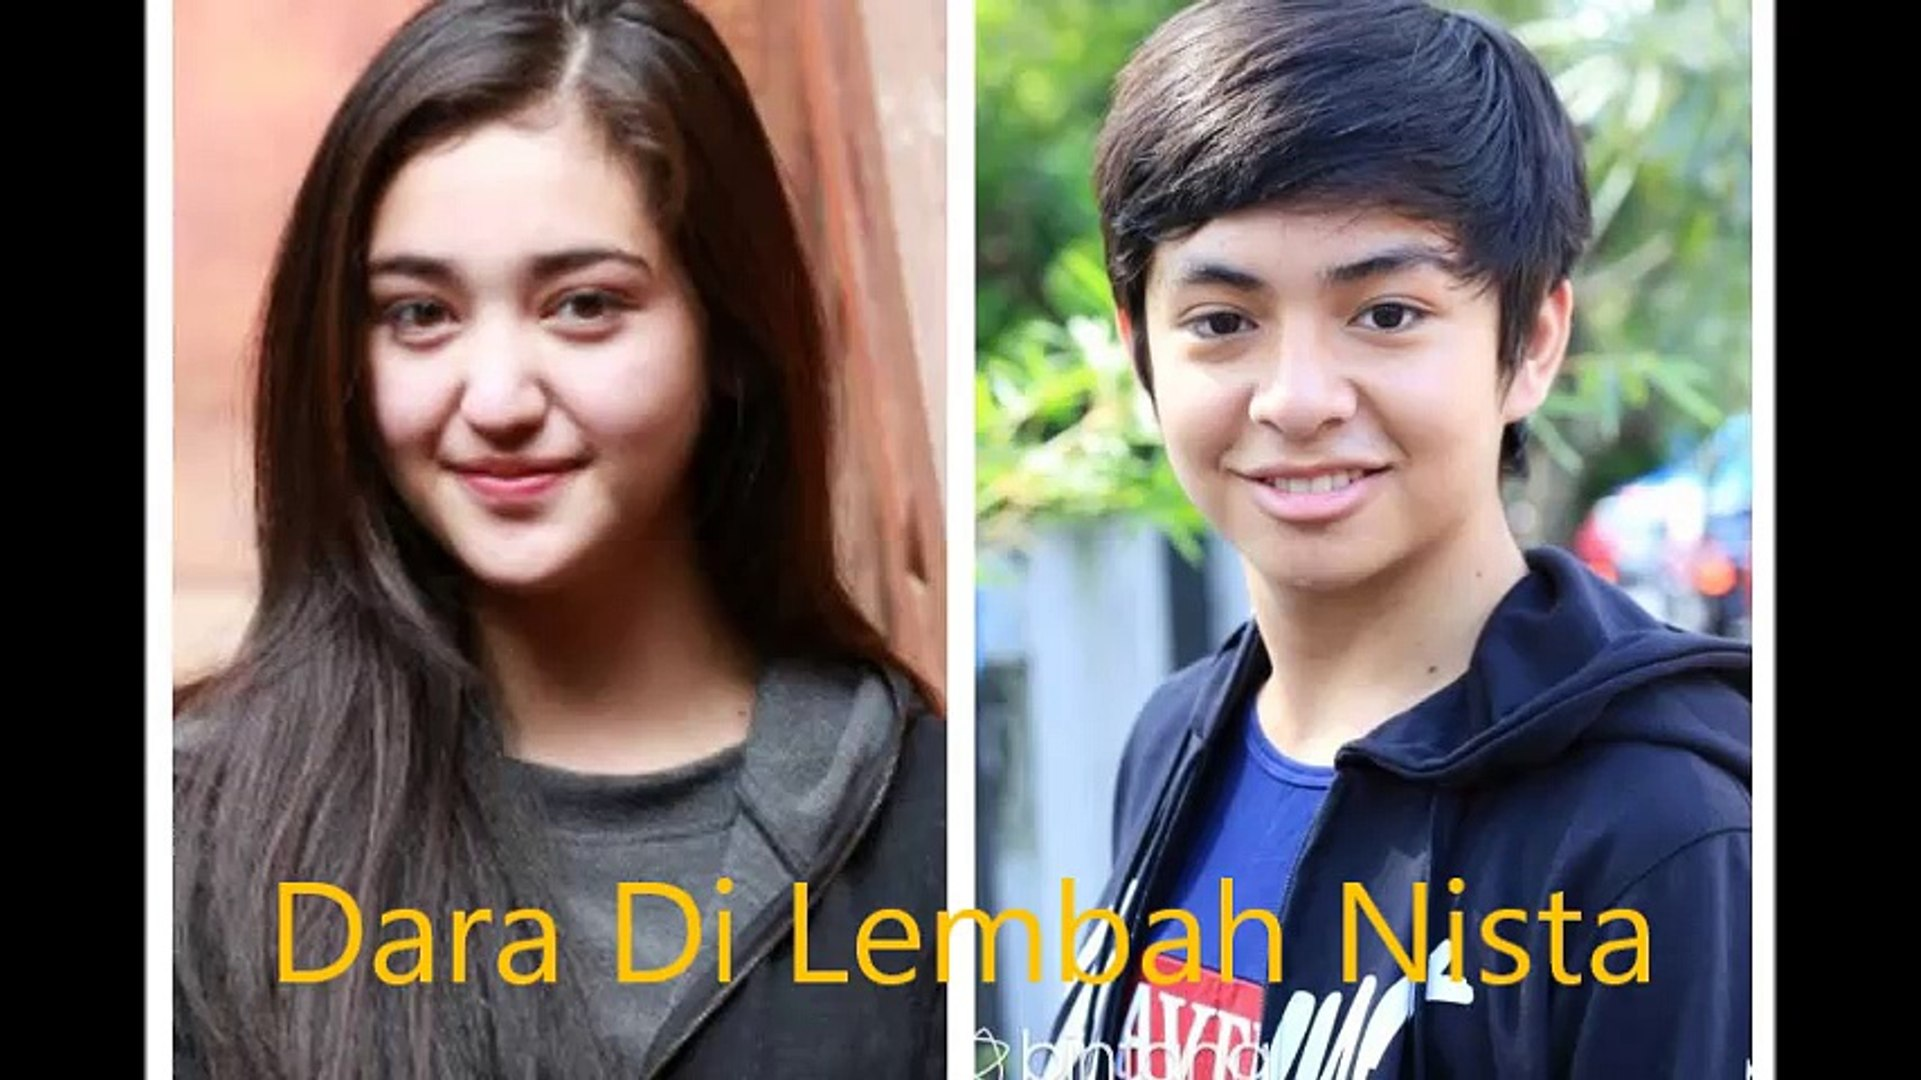 Caca Handika Dara Lembah Nista Ranty Maria And Angga Aldi Yunanda Rangga 2016 Love Romantic Fan Made